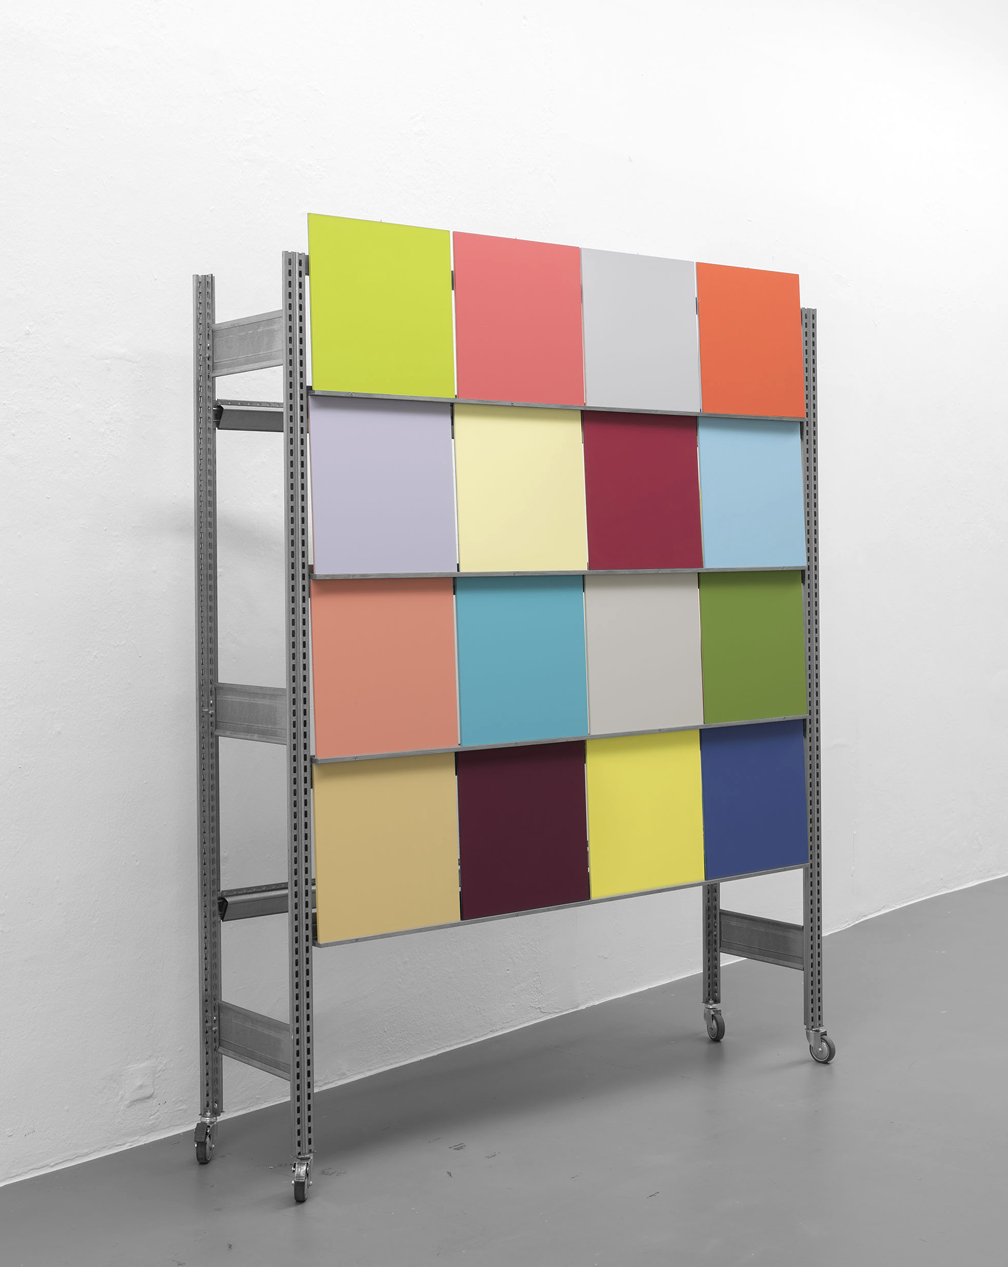 Martin Voßwinkel, 32 Colours for Albers, 2019